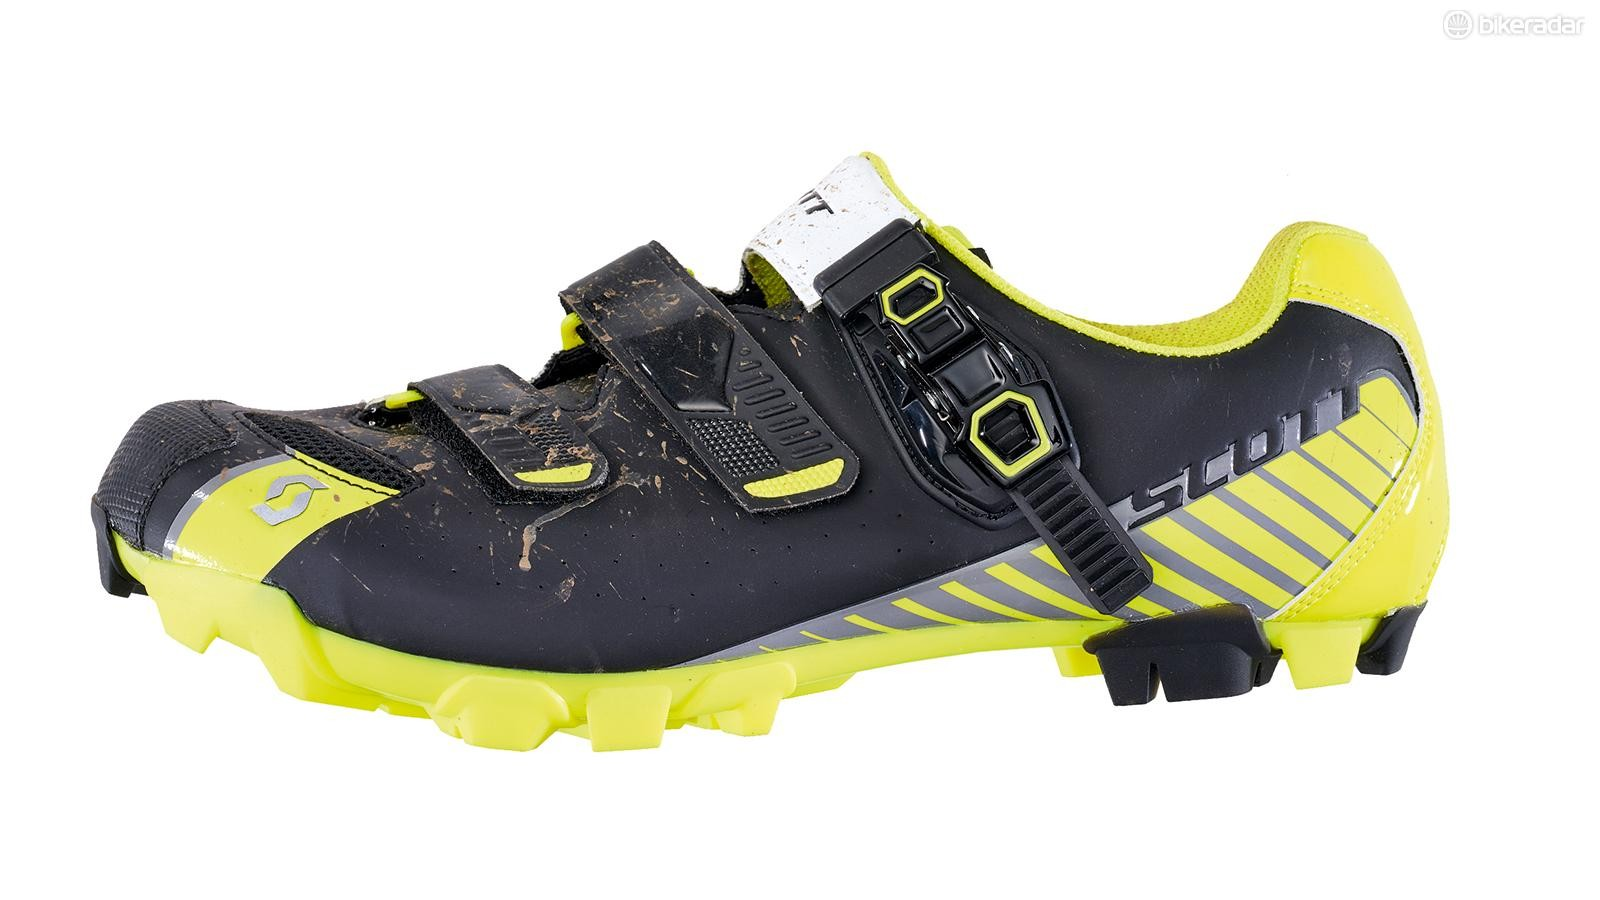 For the money, Scott's MTB Pro shoes are hard to beat